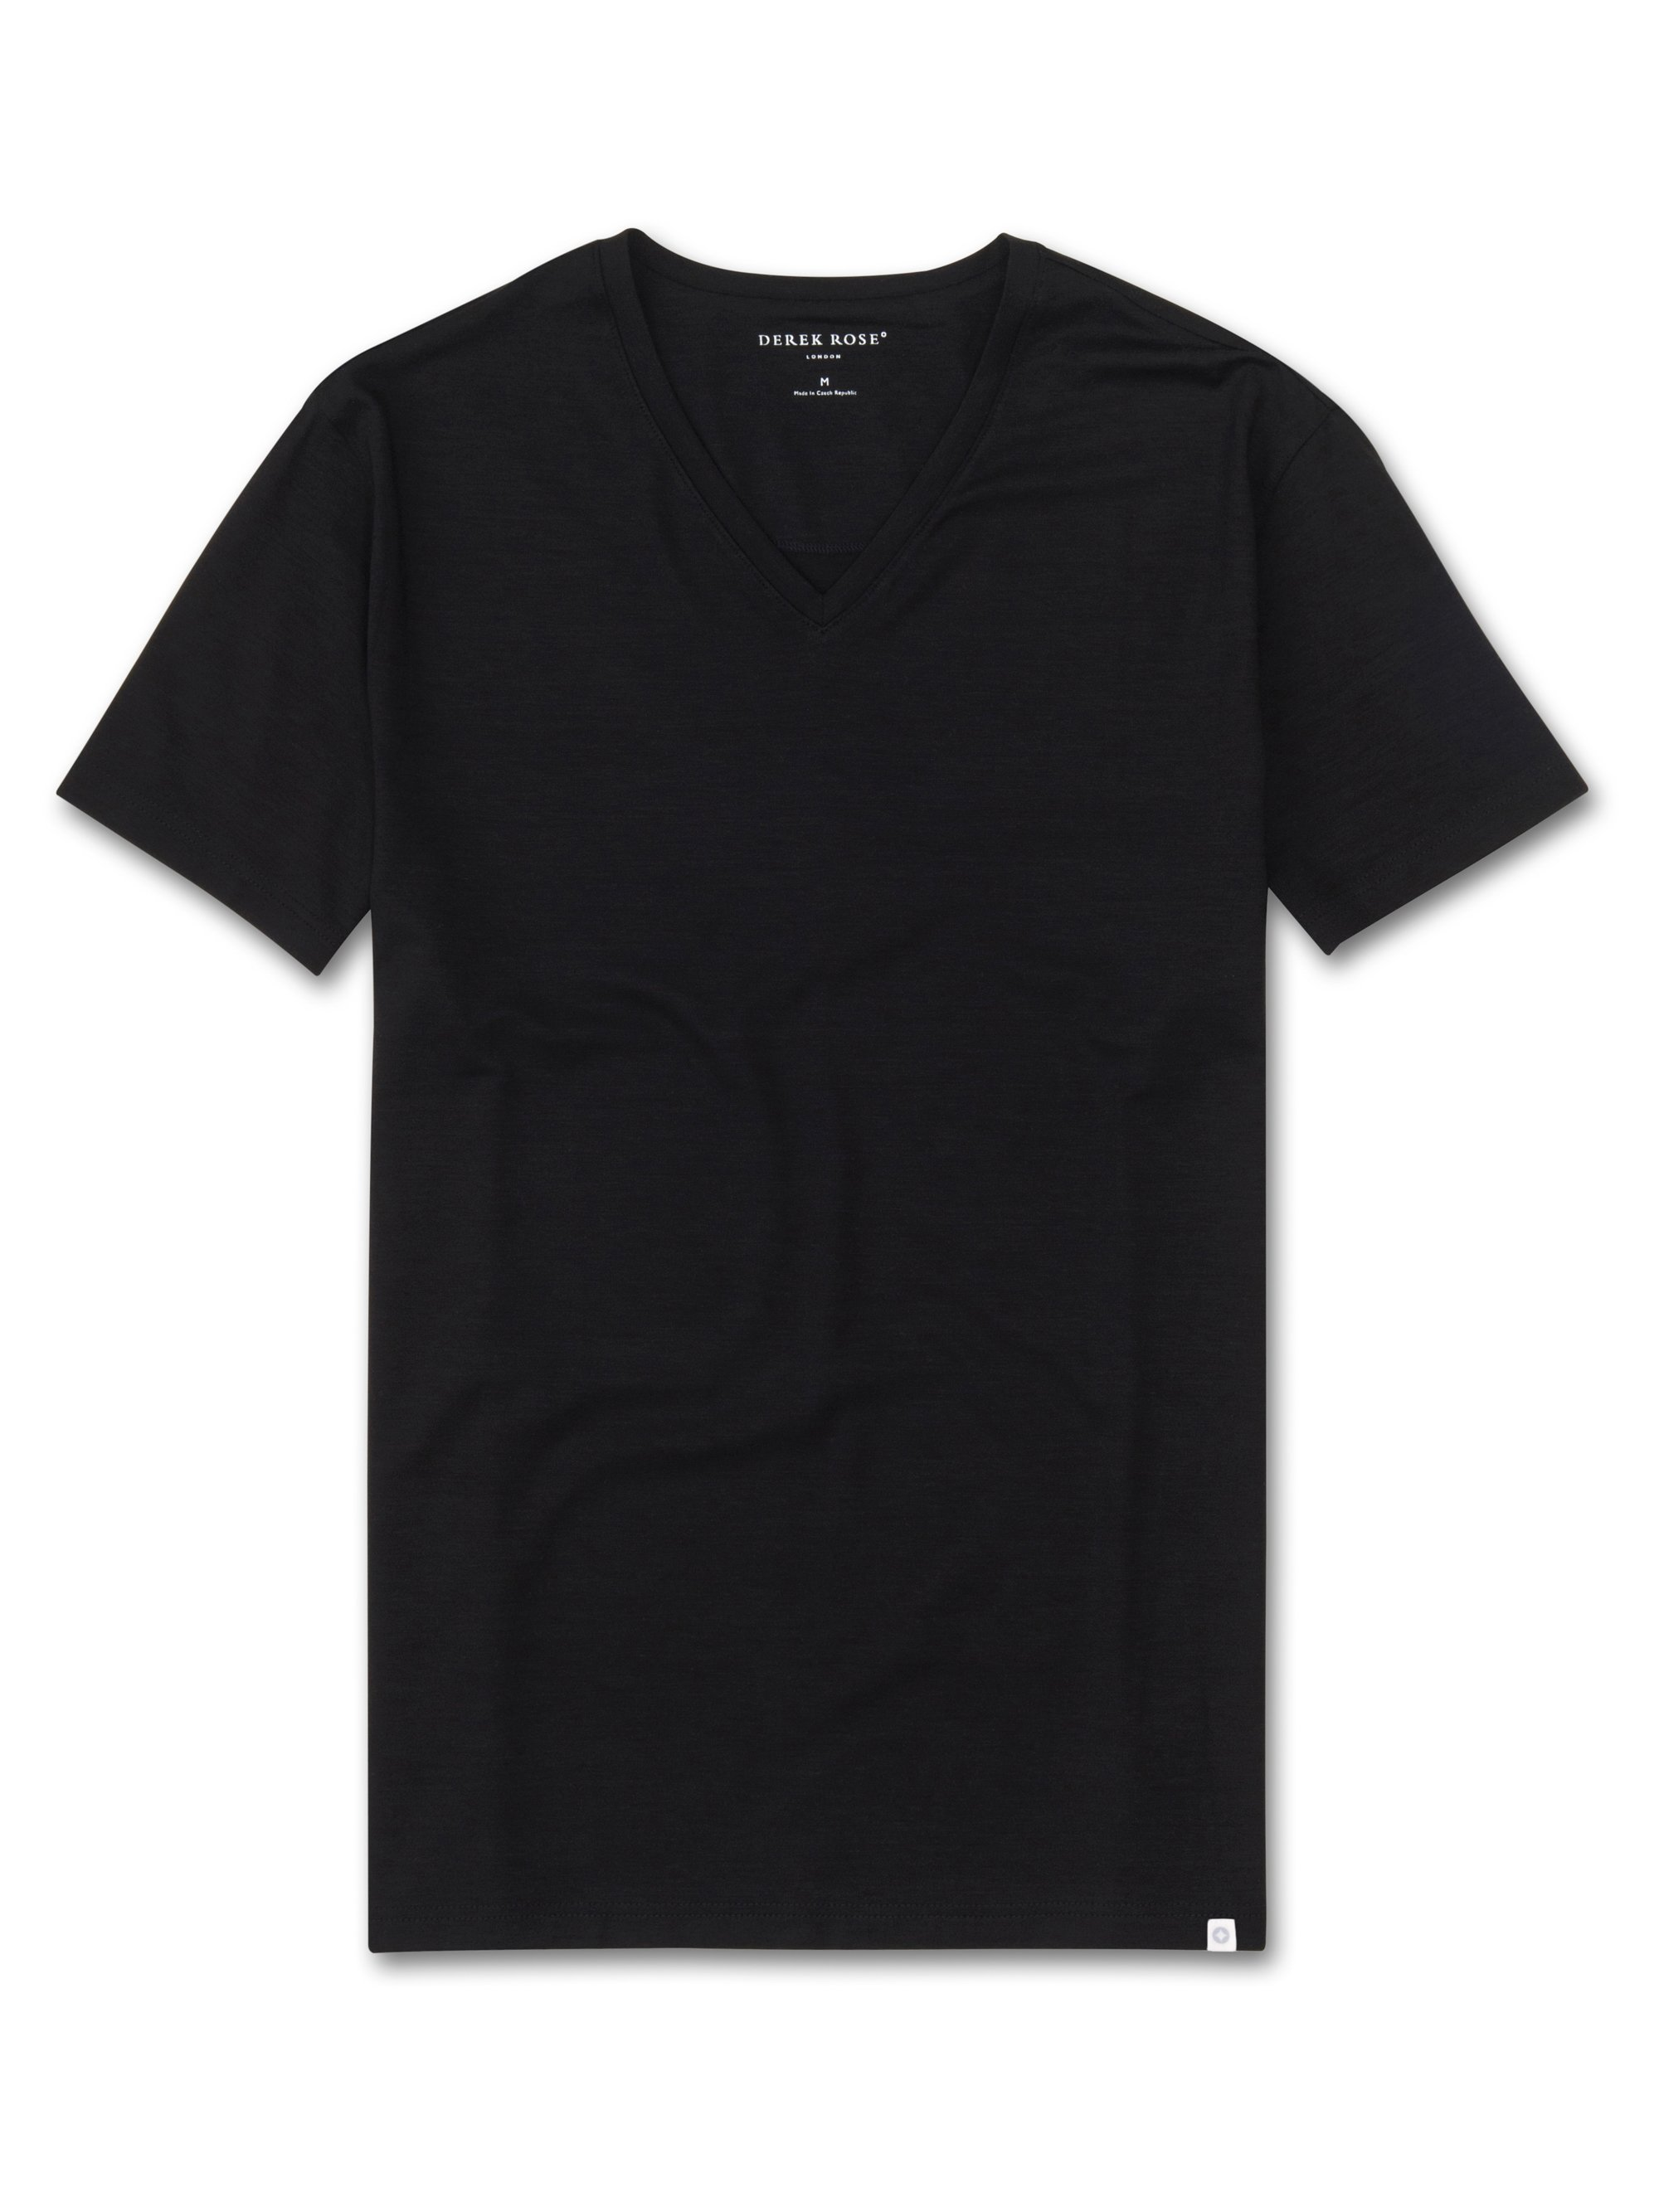 Men's Short Sleeve V-Neck T-Shirt Basel Micro Modal Stretch Black